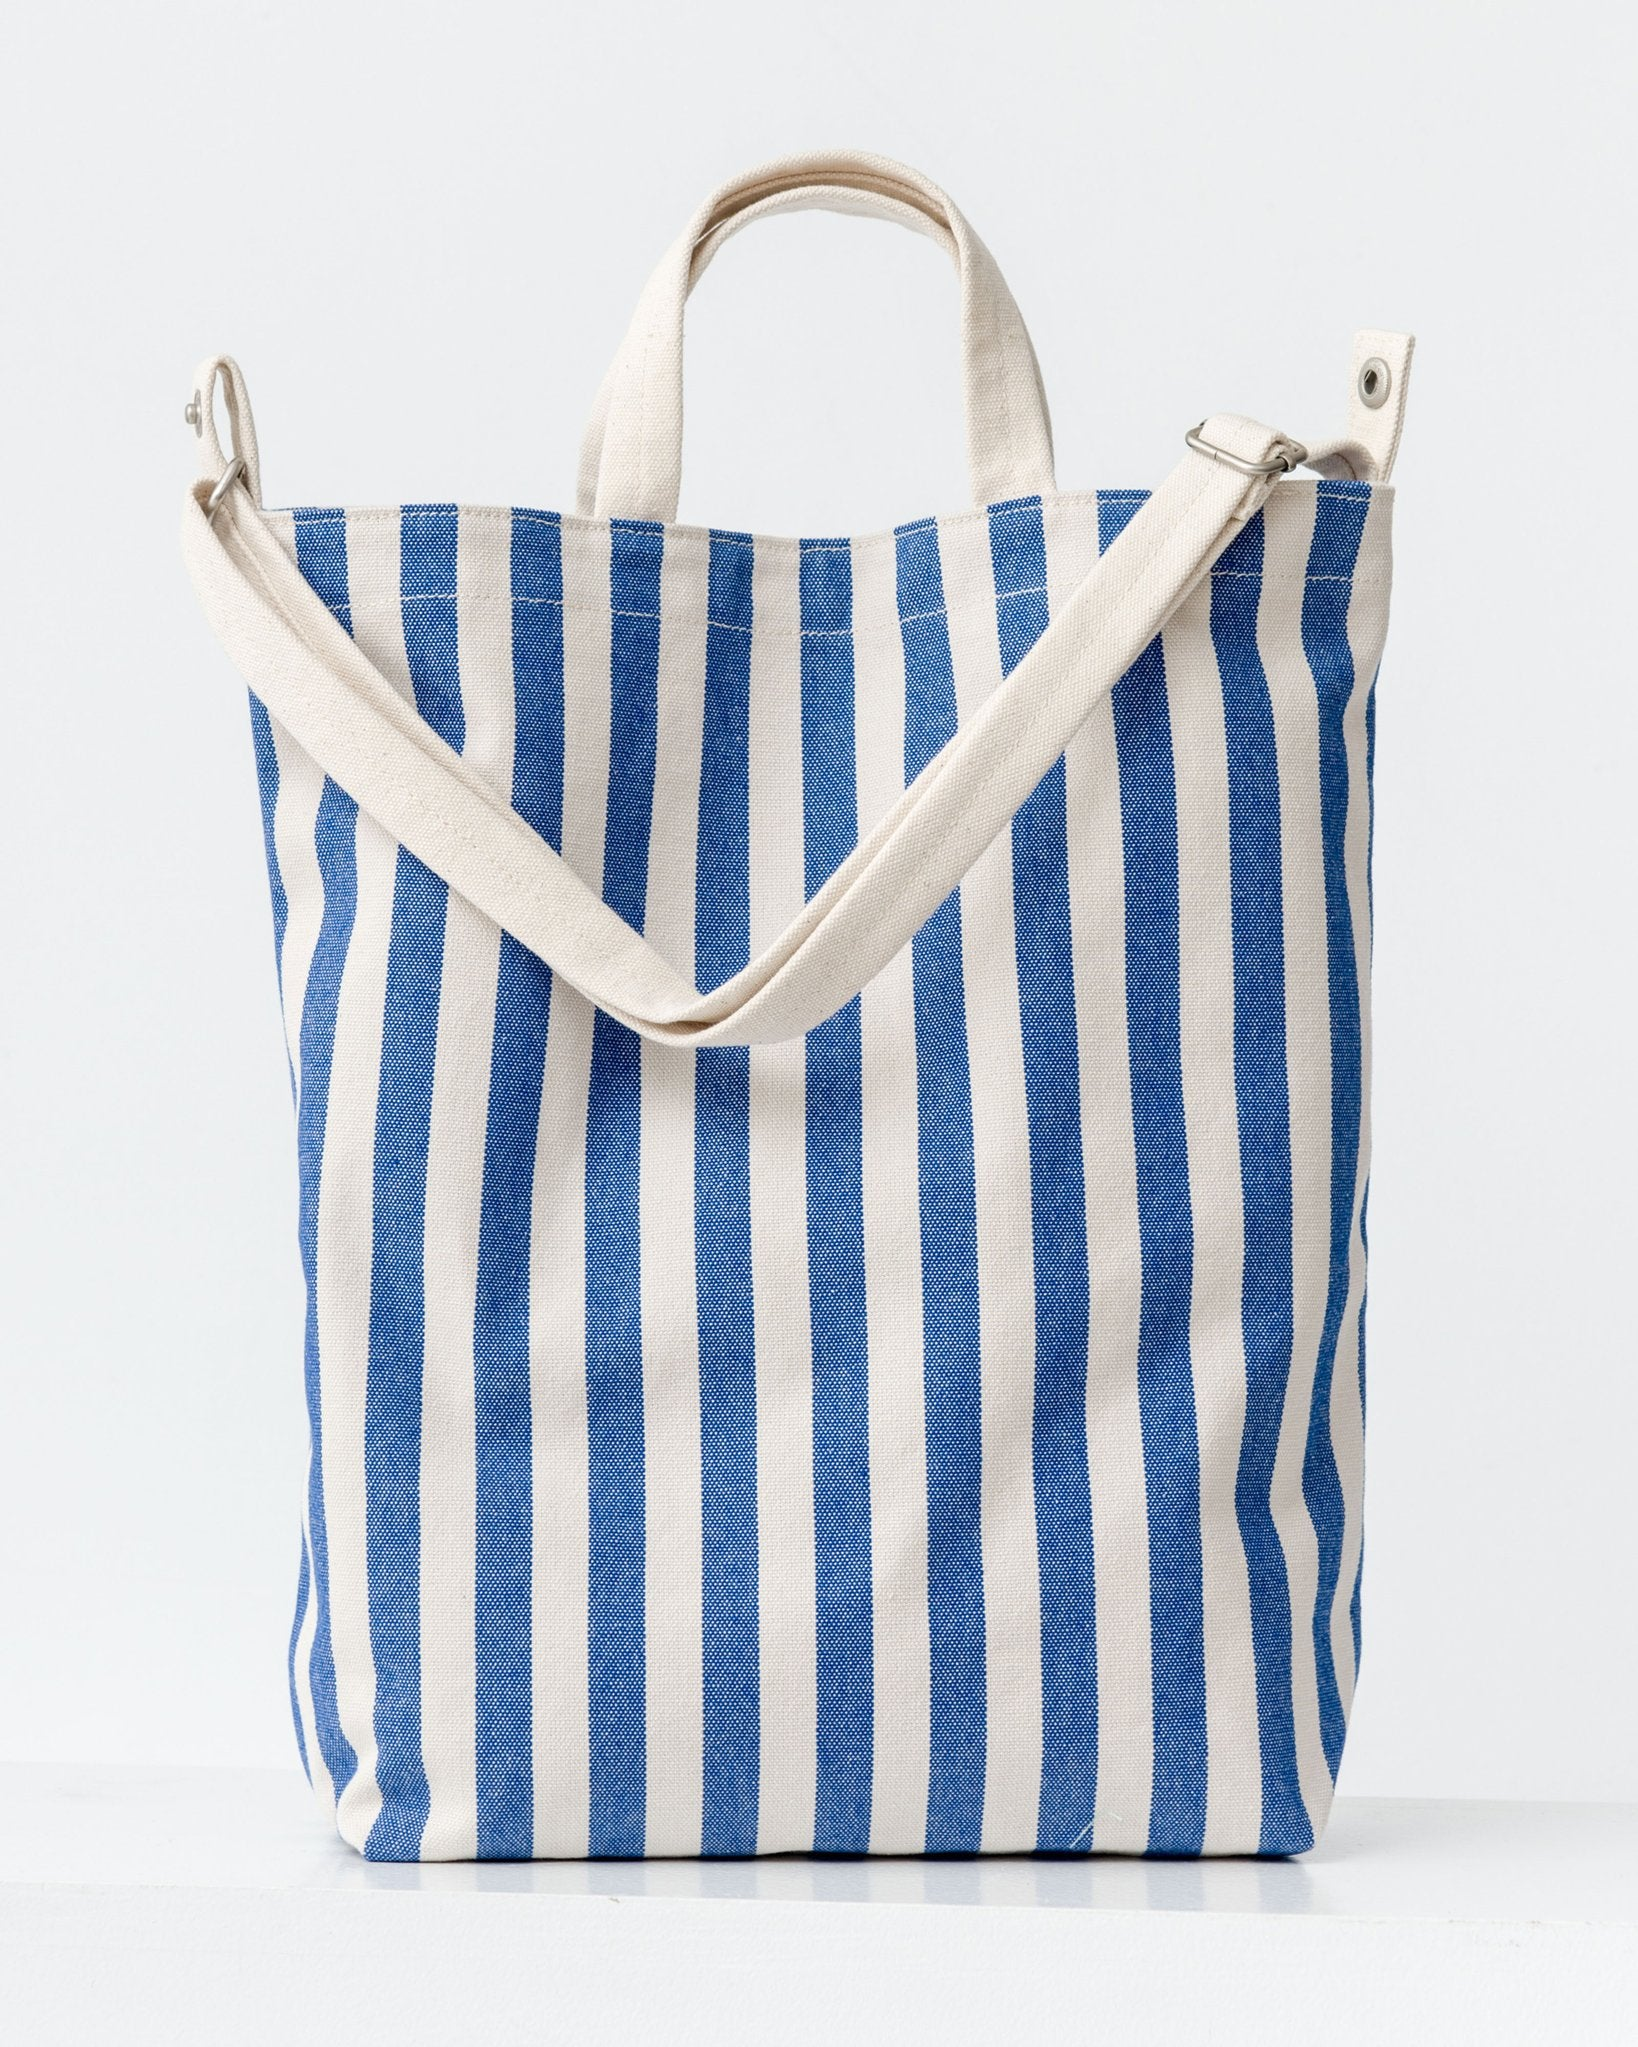 Duck Bag in Summer Stripe